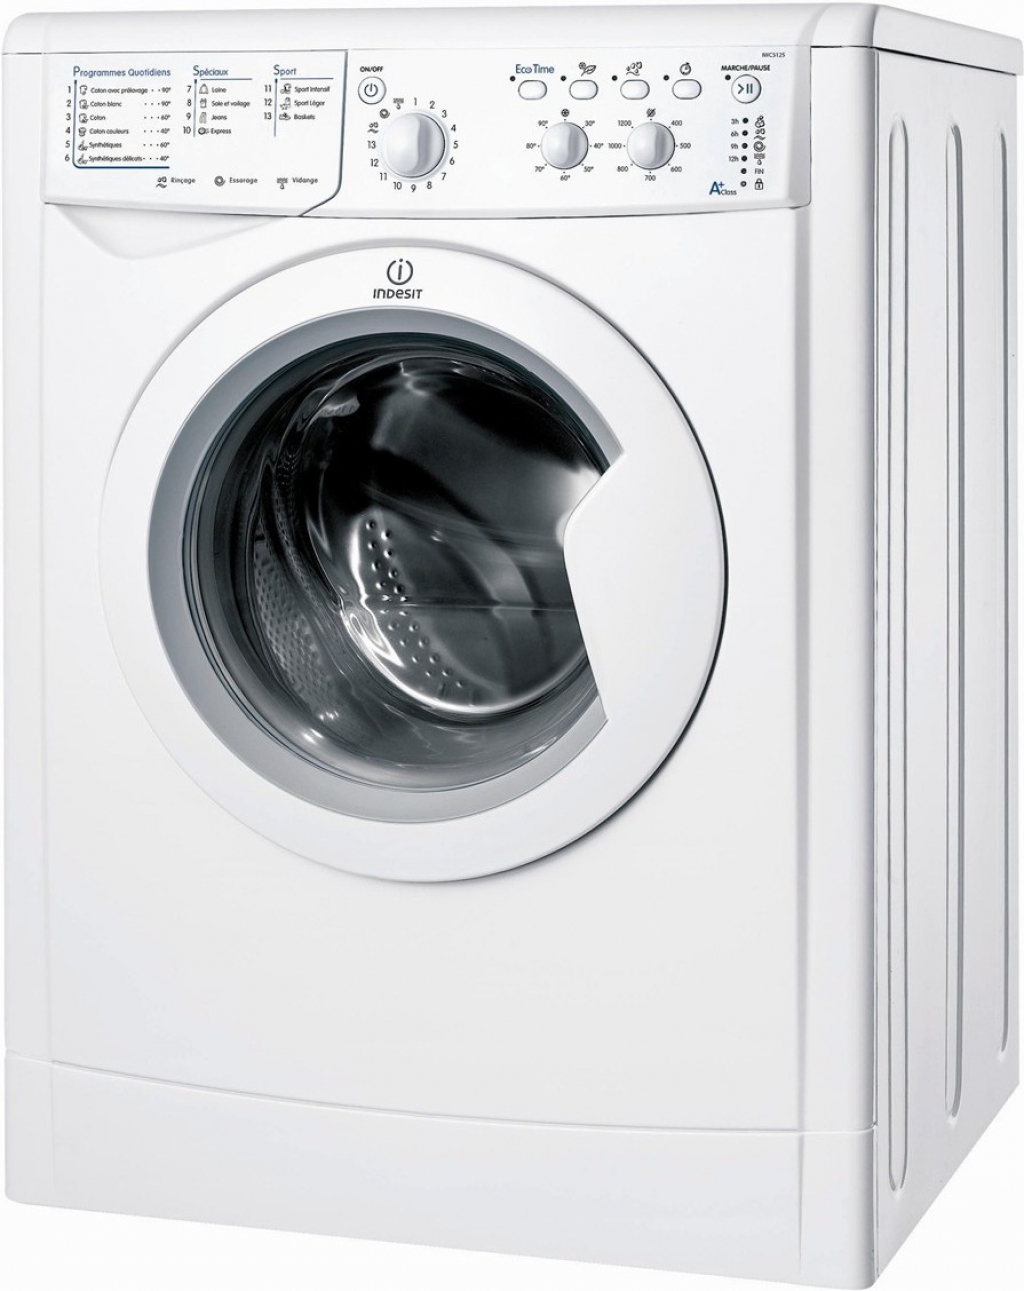 Перална машина Indesit IWC 60851 C ECO EU